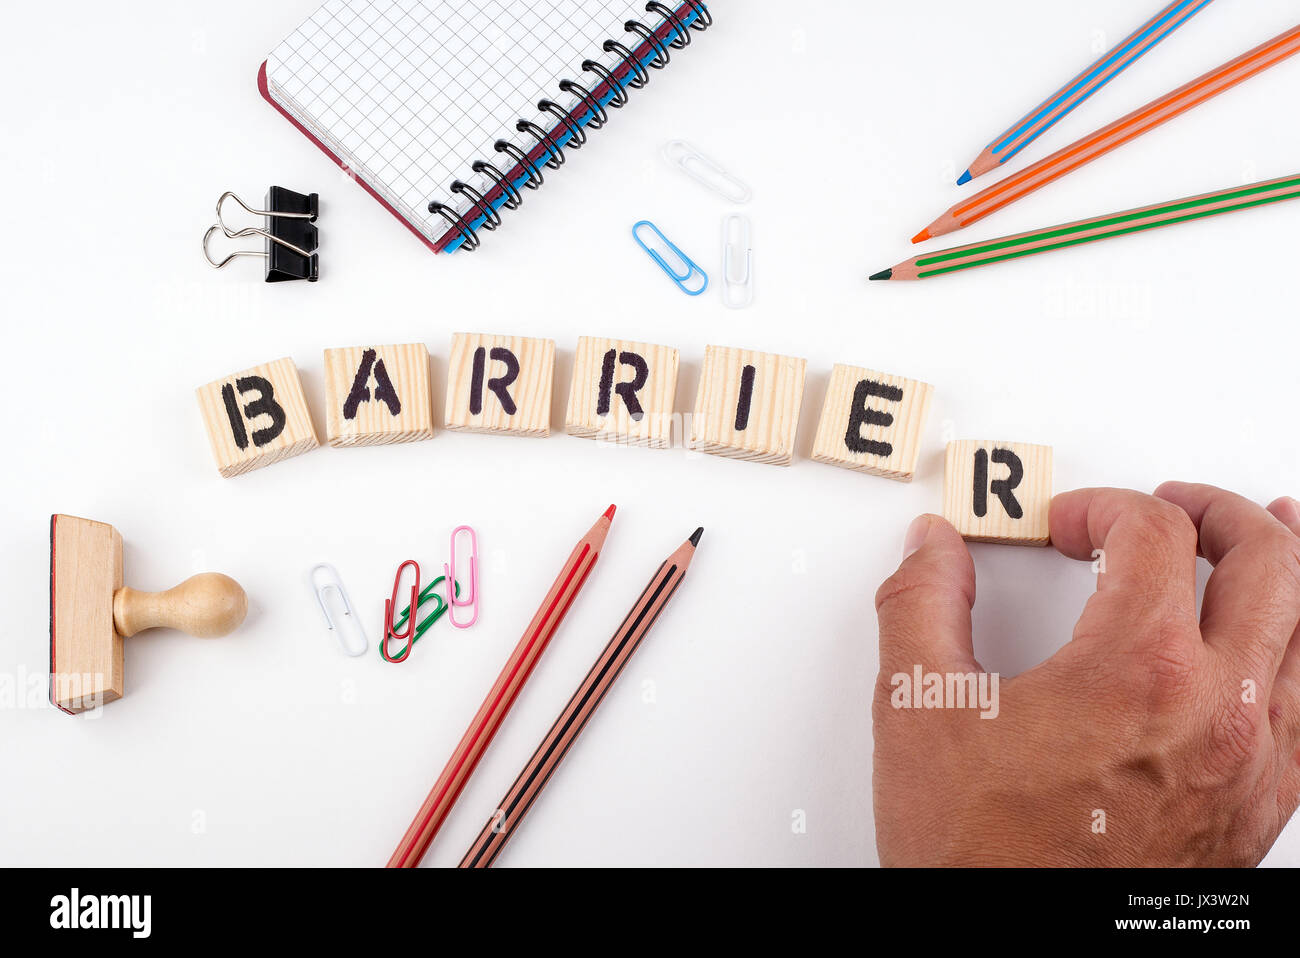 Barrier concept. Wooden letters on a white background. - Stock Image